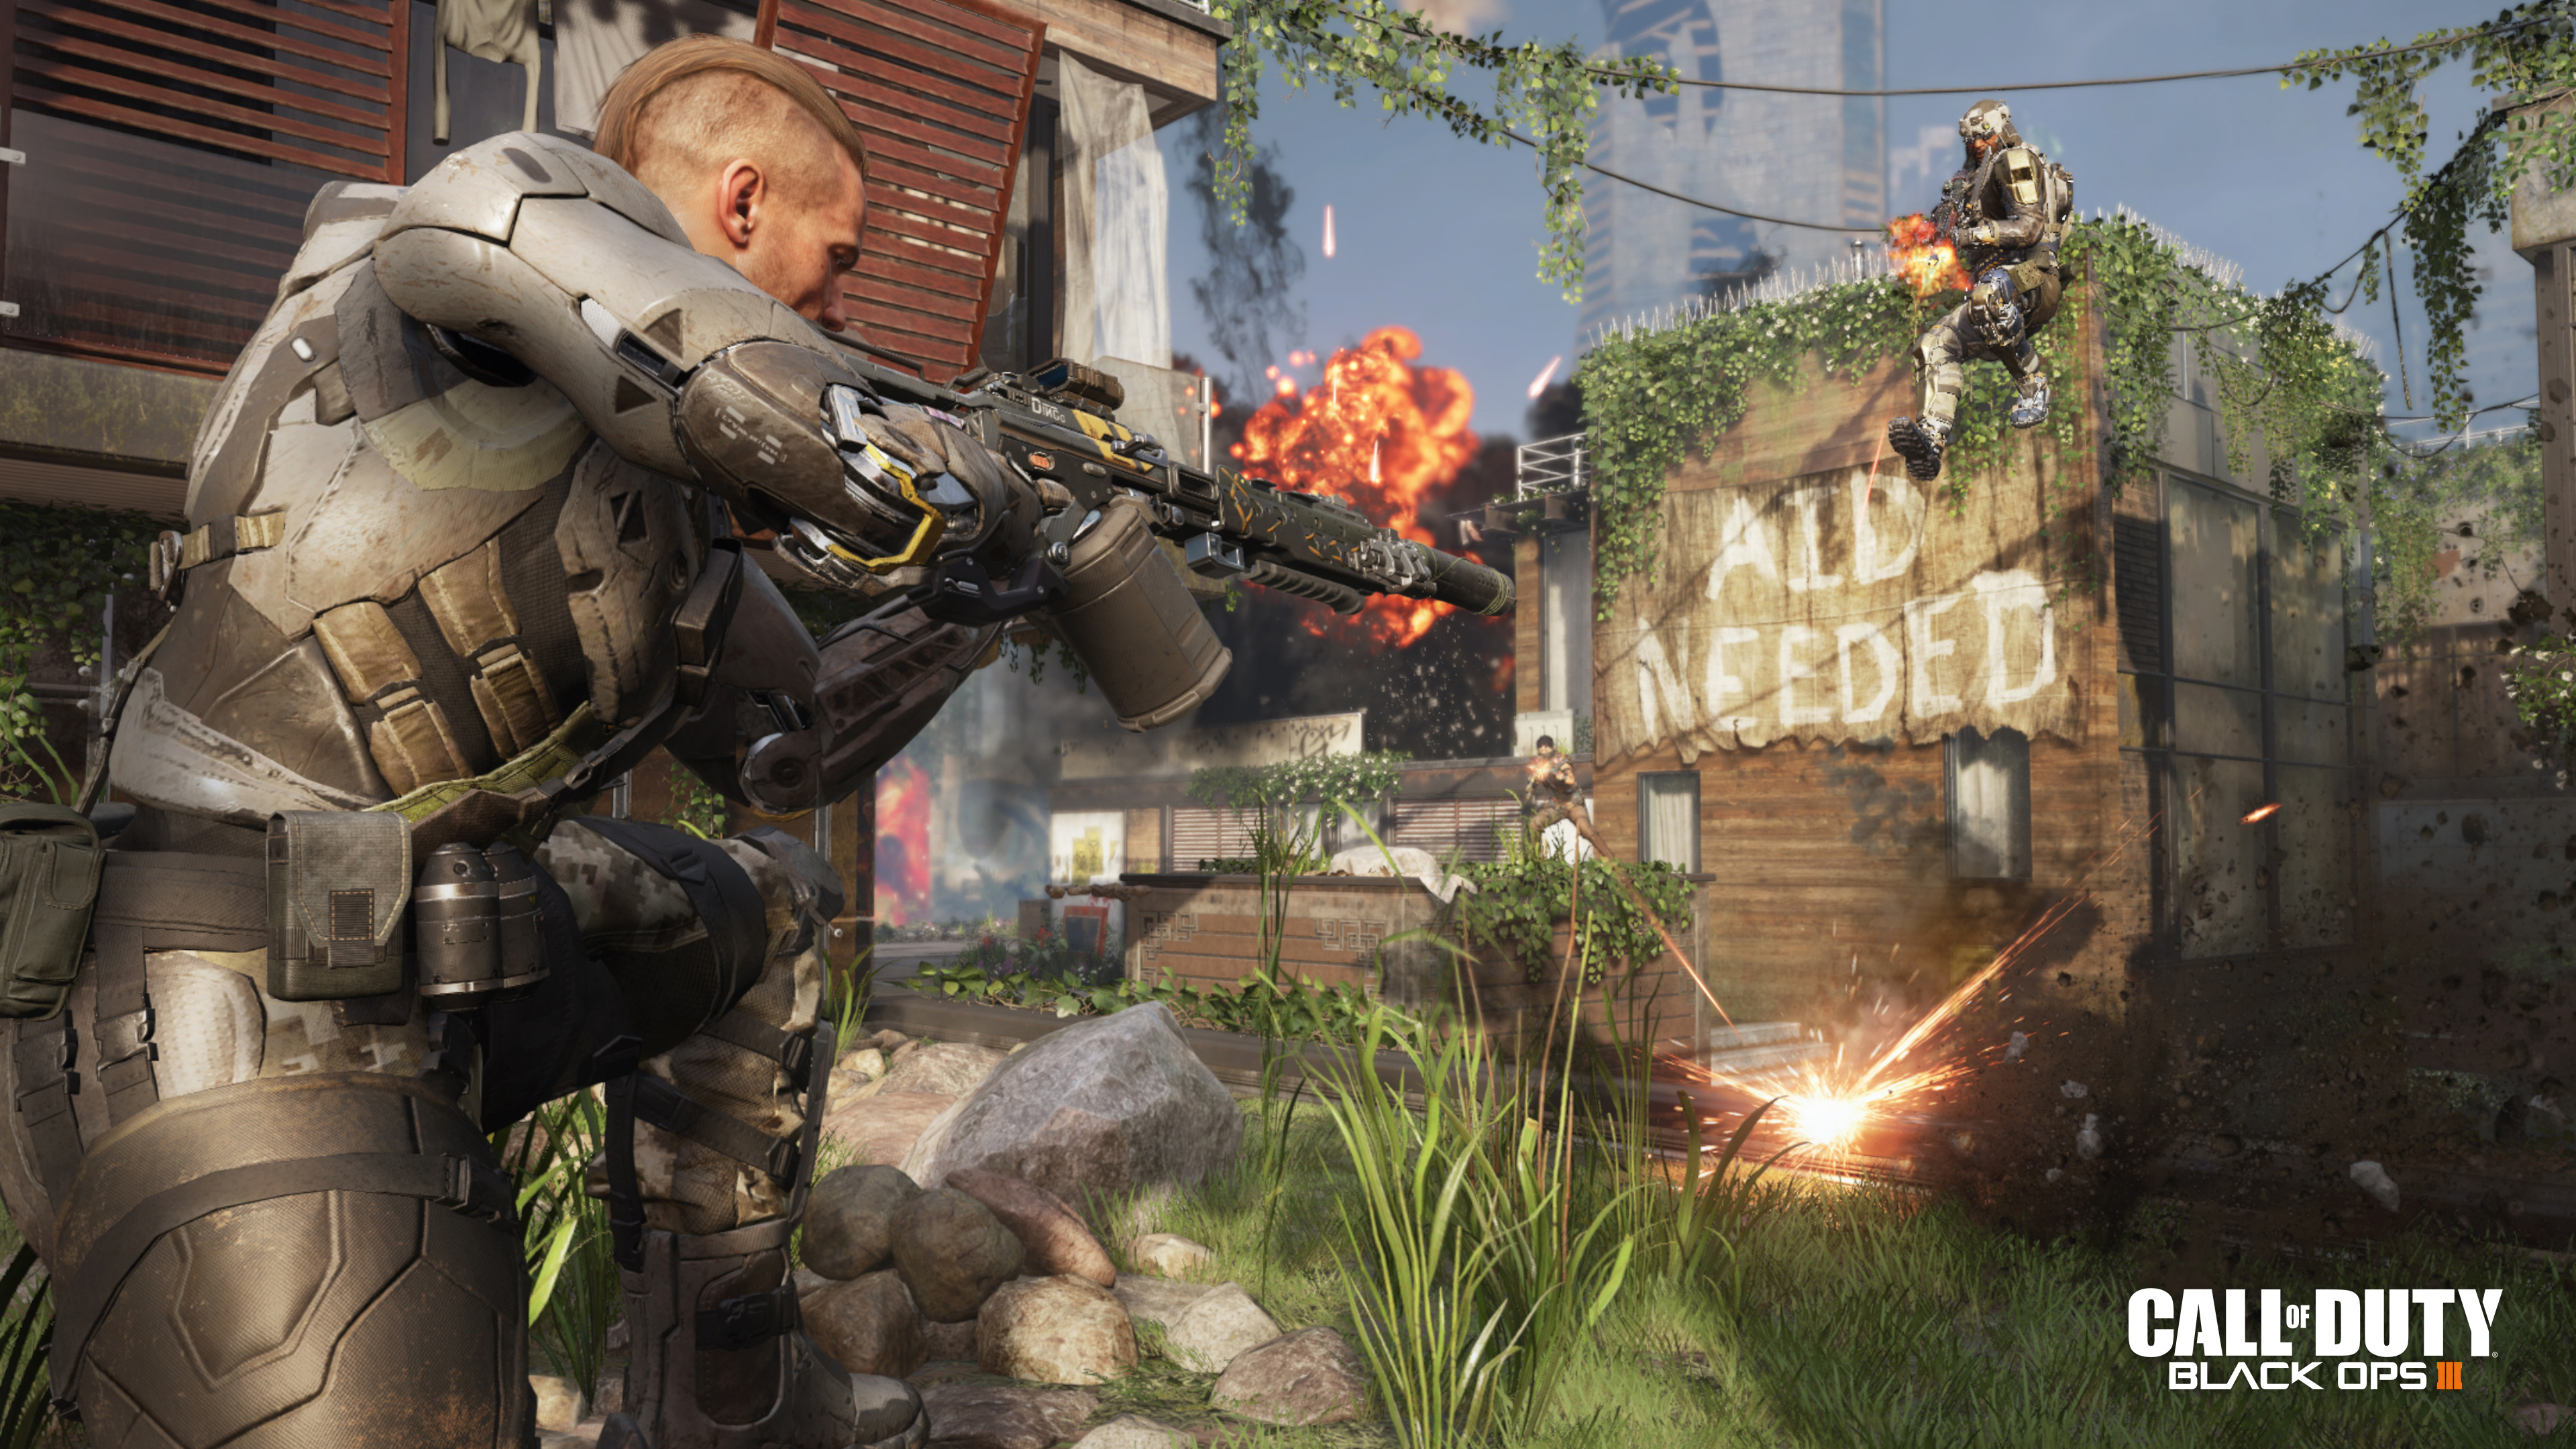 9 New Official Black Ops 3 Screenshots Released